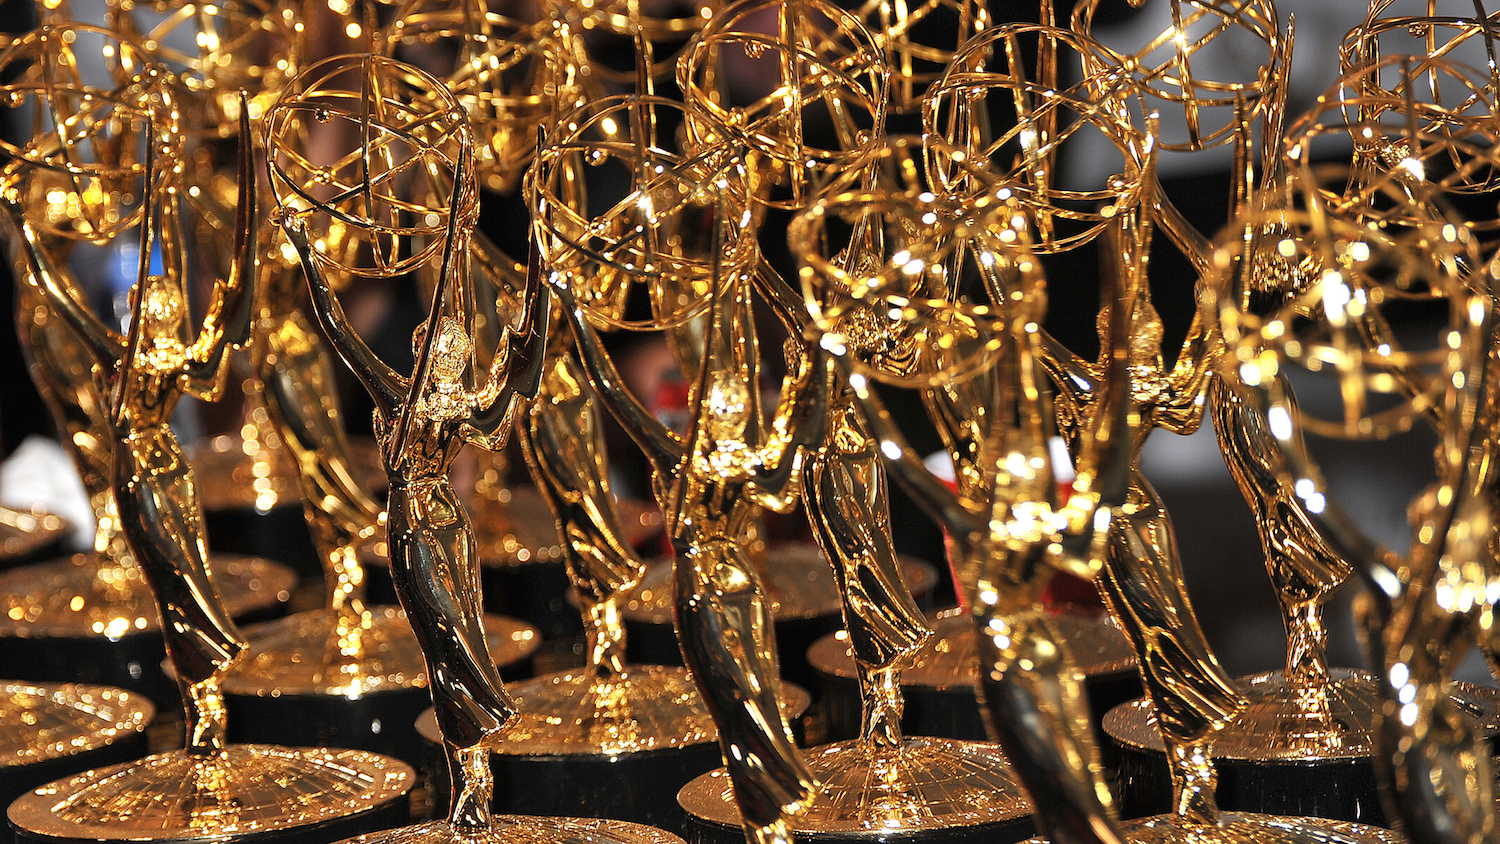 Formerly Incarcerated Chefs Helped Cook The Emmys' Big Dinner